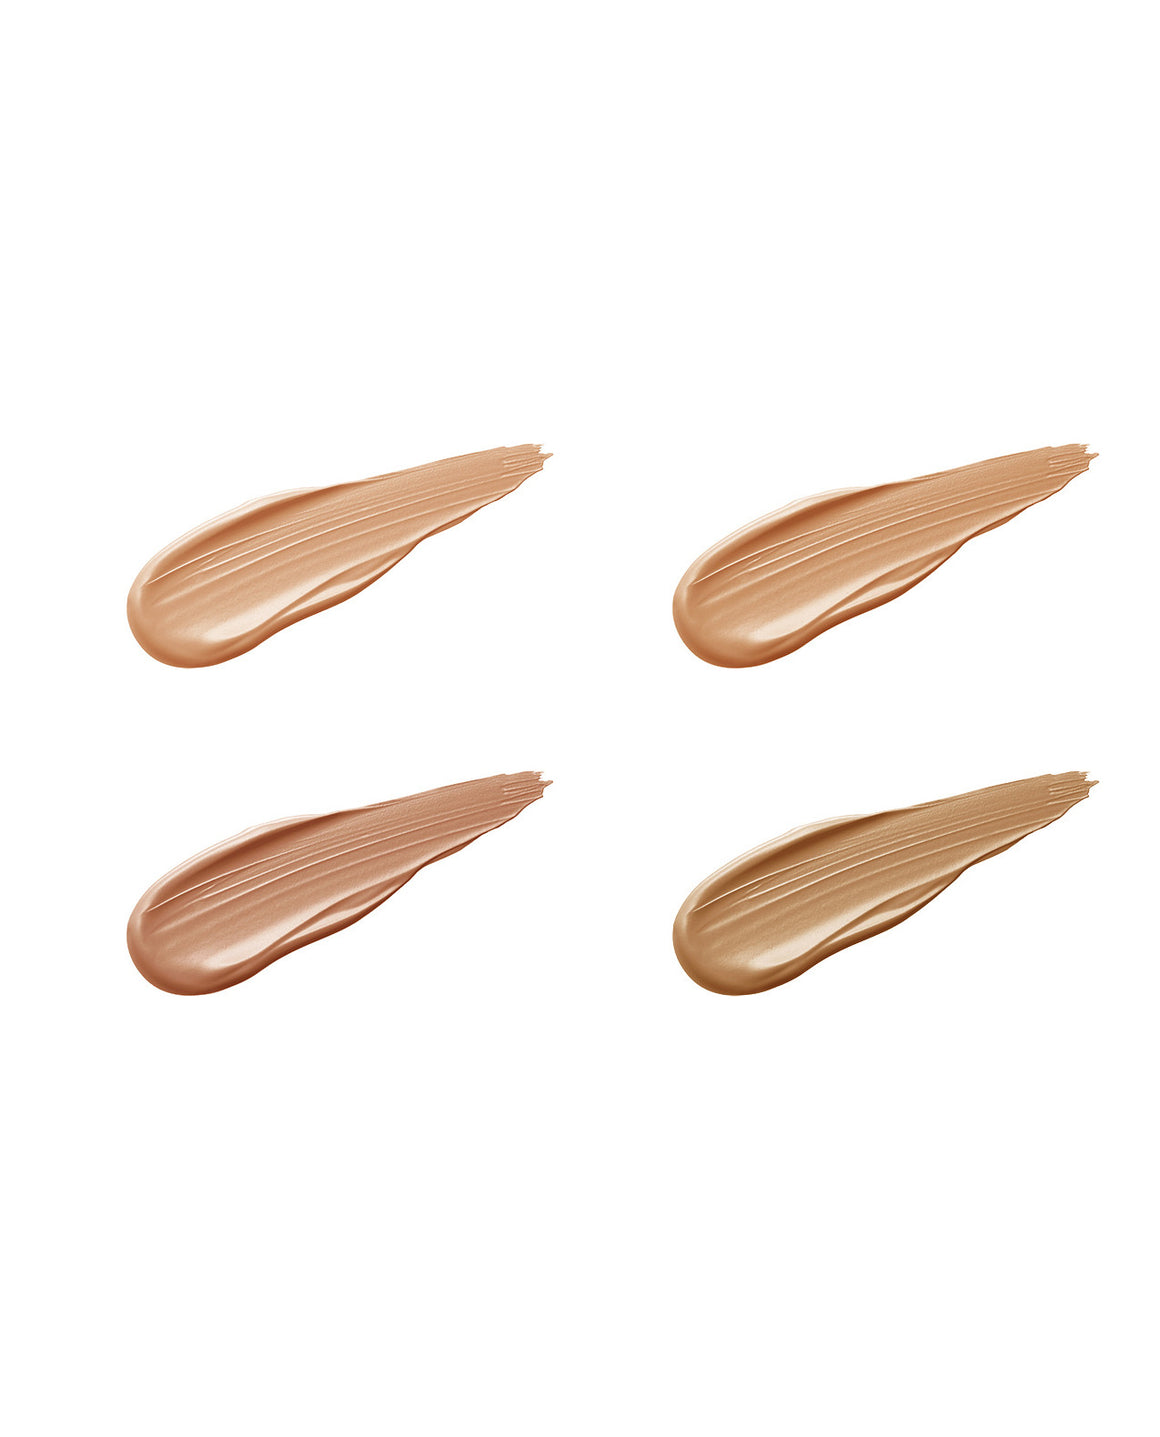 Moisture Foundation Sample Shades (Medium)